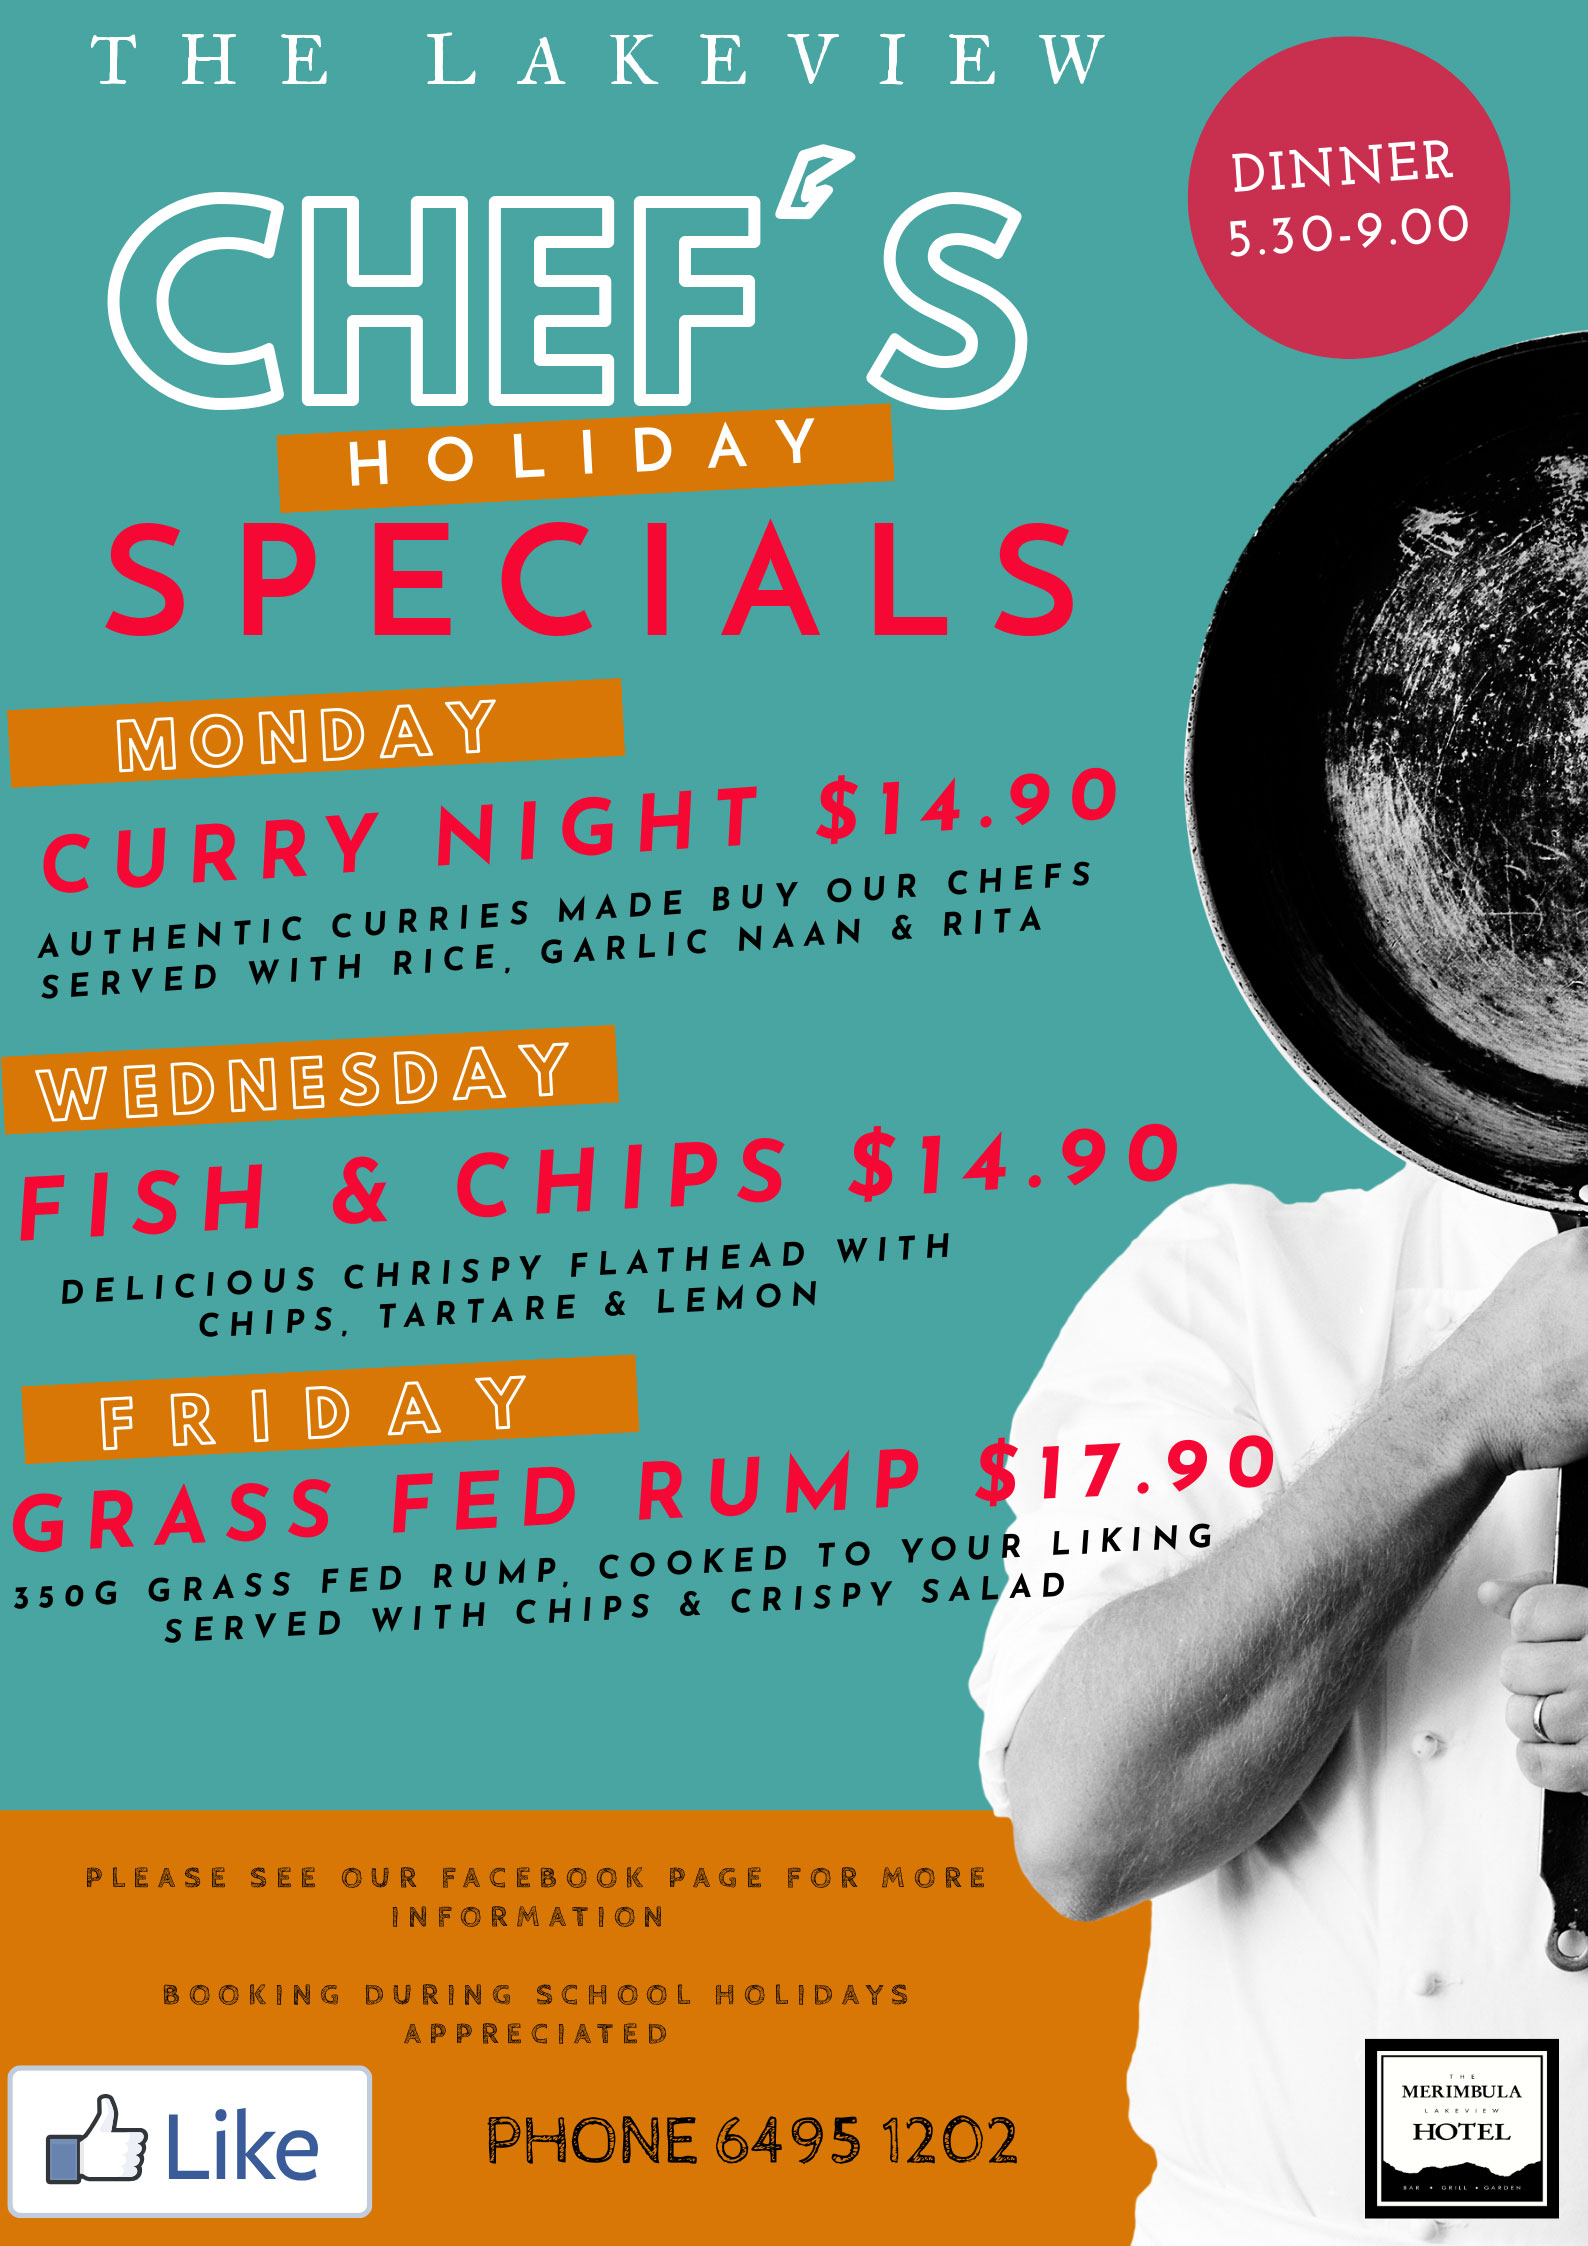 chef's holiday specials merimbula lakeview hotel